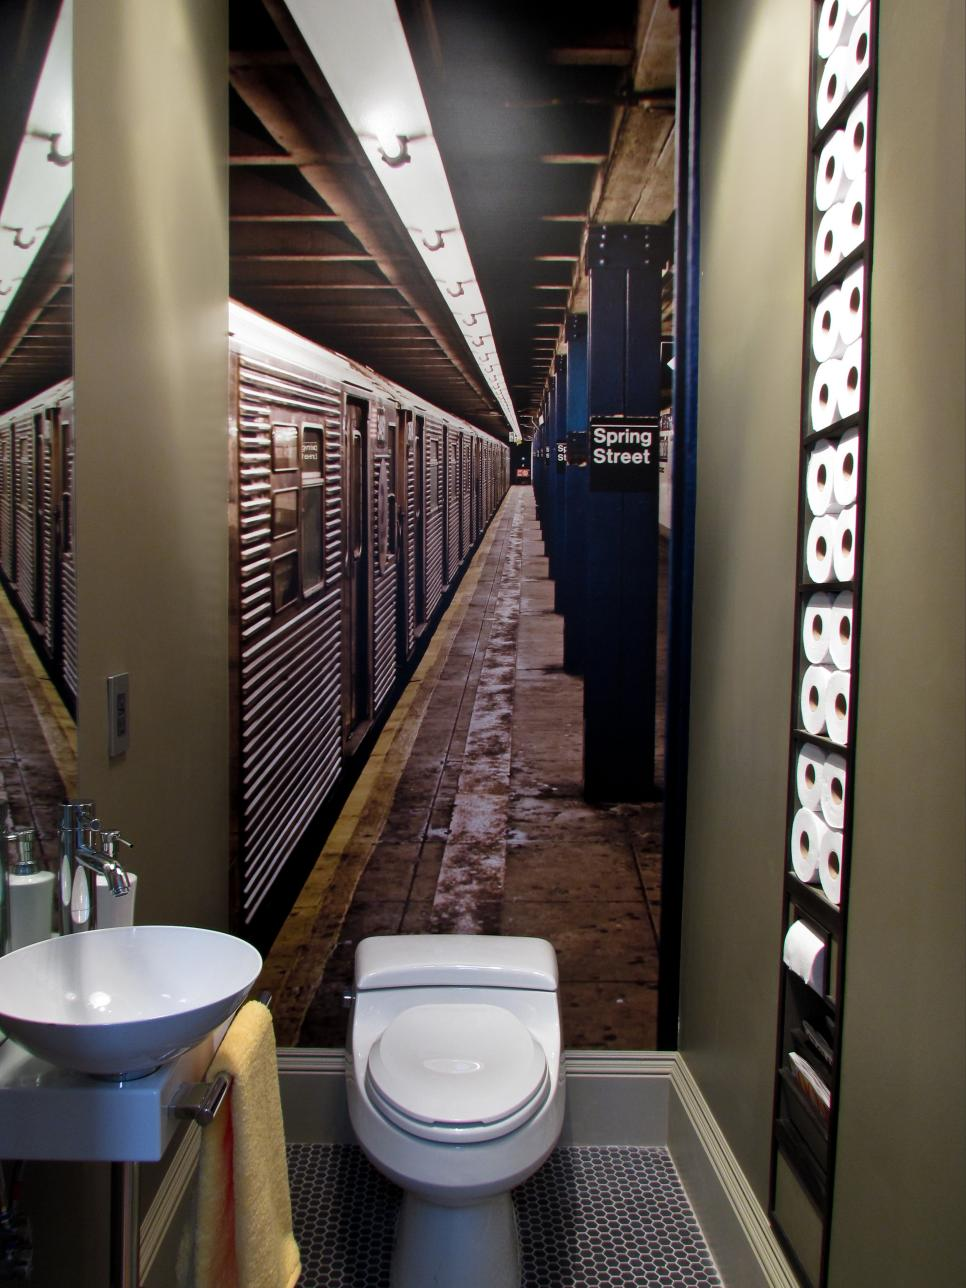 Marvelous Design Of The Small Bathroom Storage With Amazing Pics On The Wall Added With Grey Wall And White Sink And Toilets